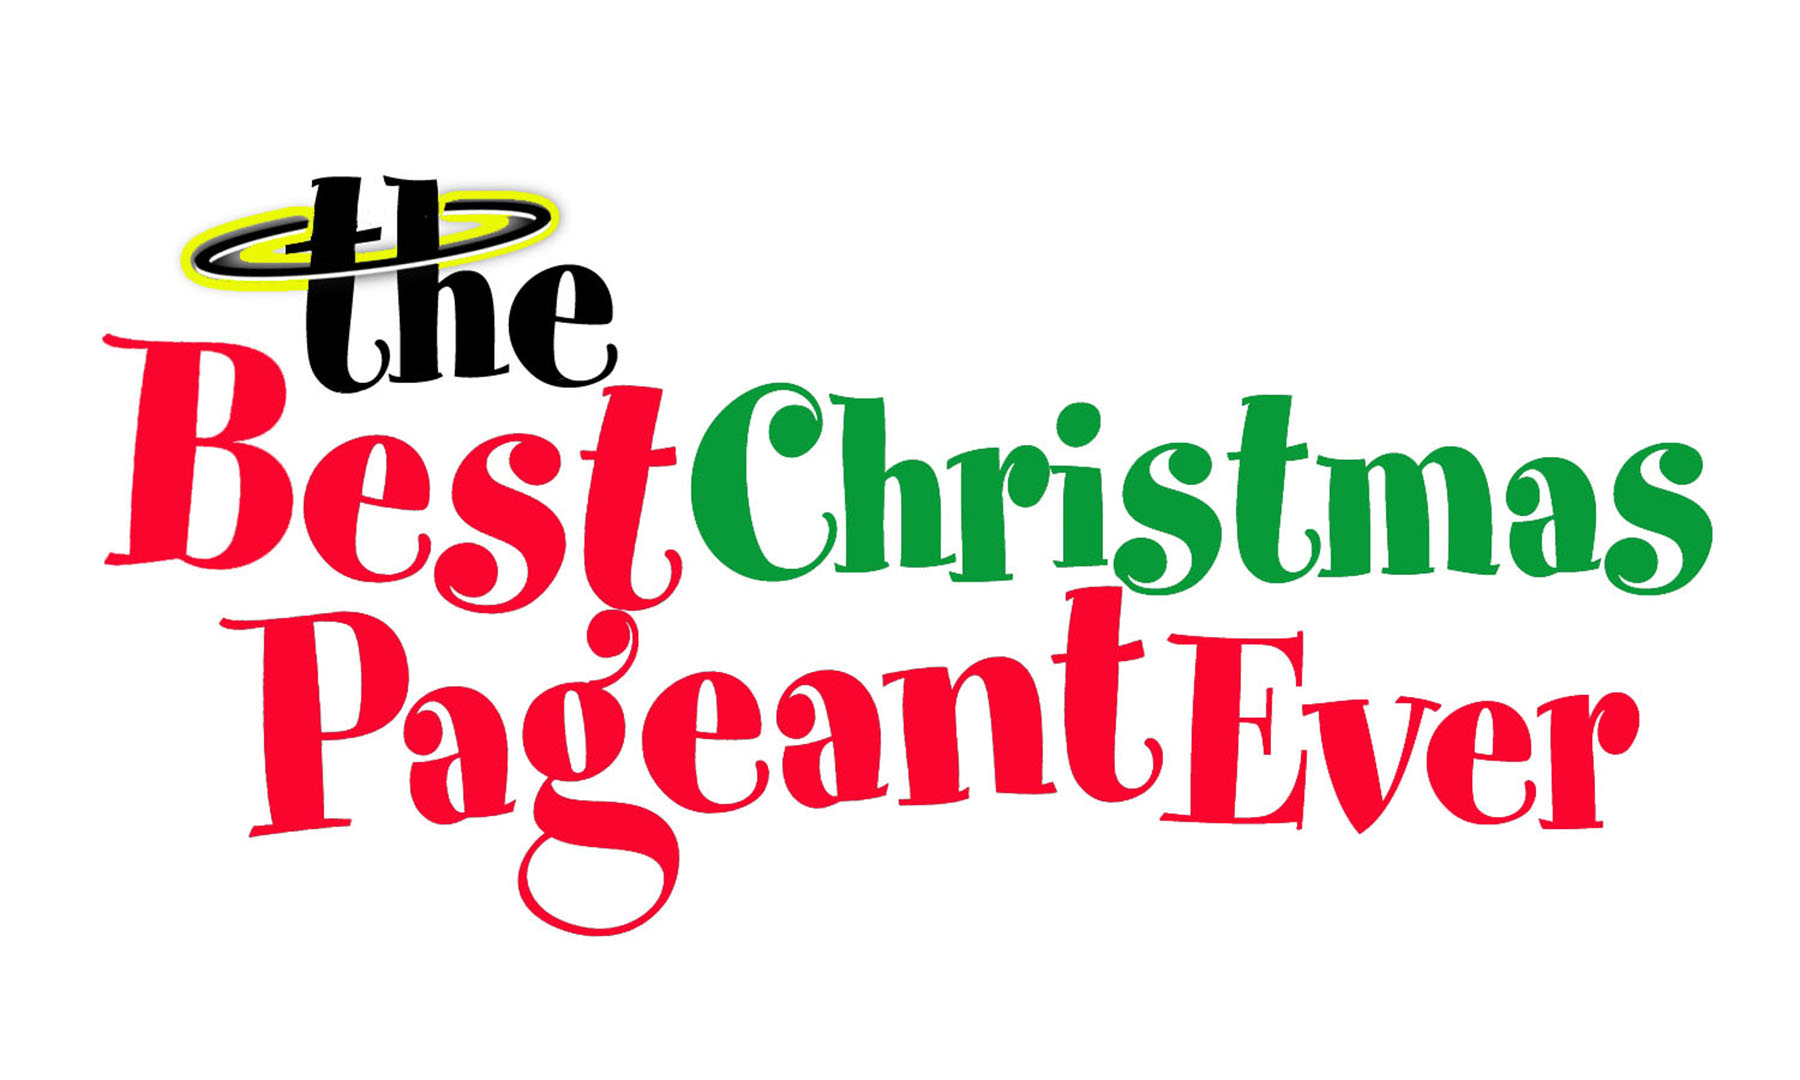 Miraculous William Woods News 39The Best Christmas Pageant Ever39 To Be Easy Diy Christmas Decorations Tissureus